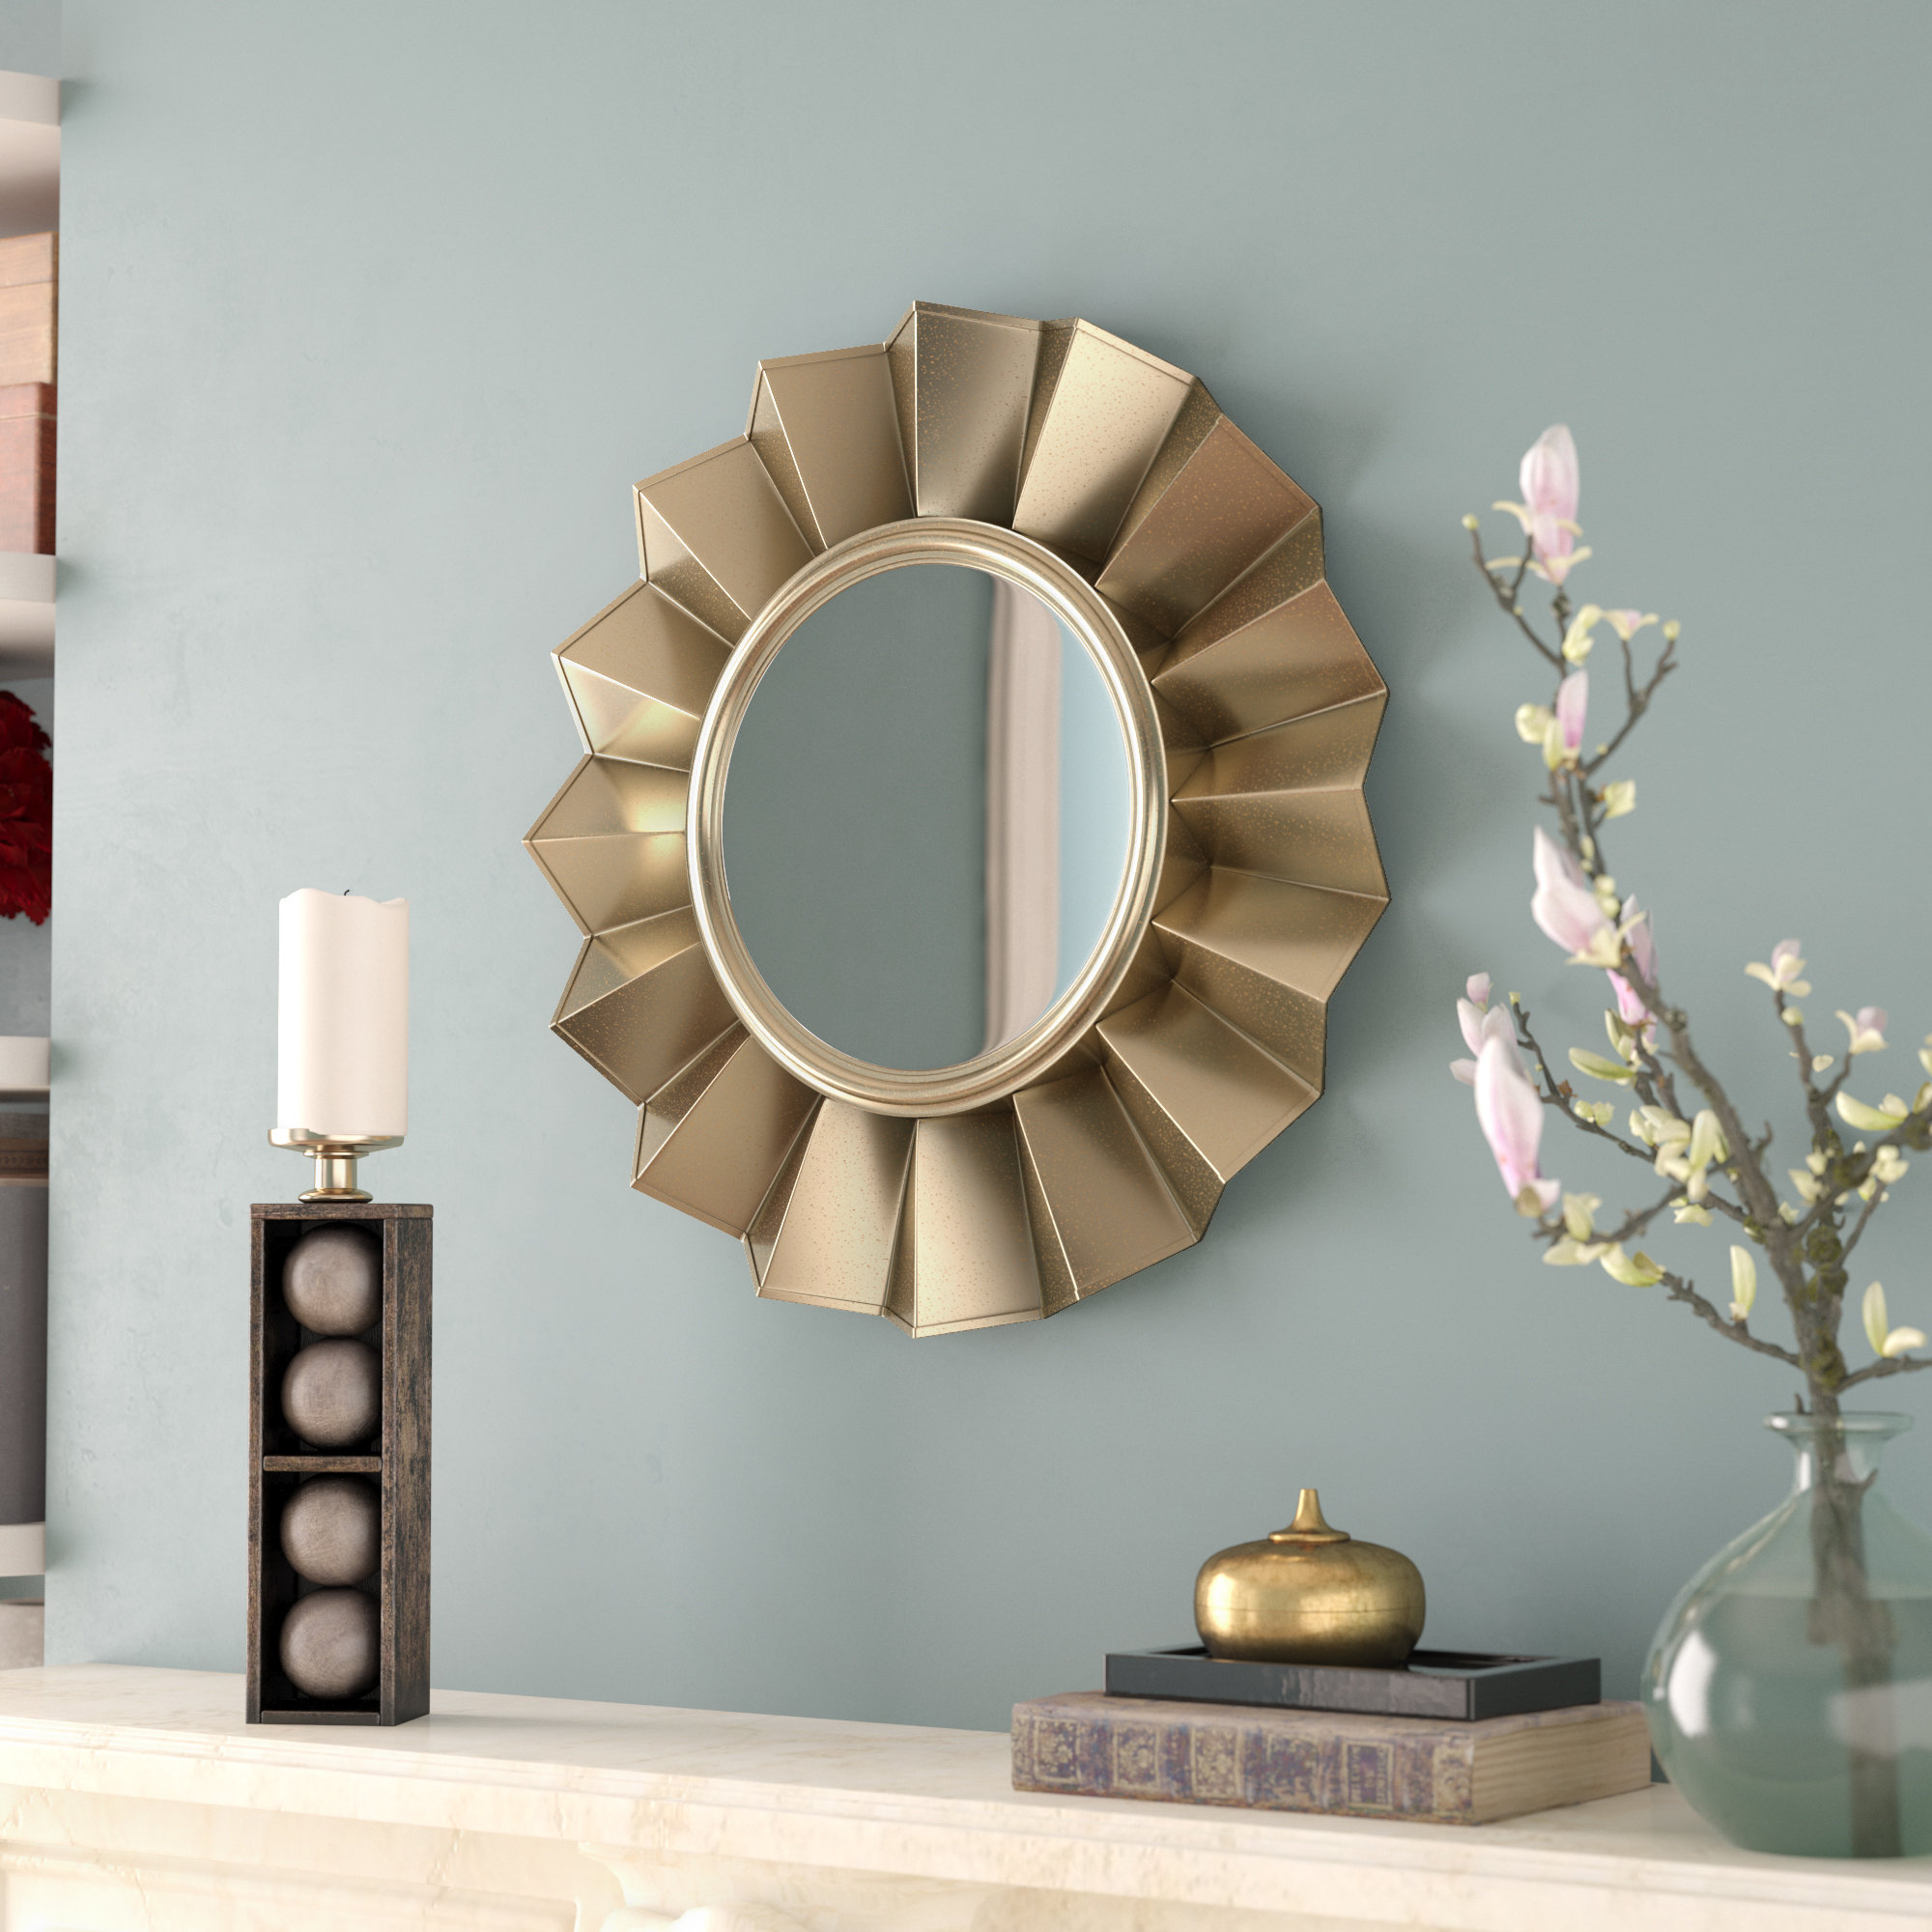 36 Inch Round Wall Mirror Gold | Wayfair Regarding Tata Openwork Round Wall Mirrors (Image 1 of 20)